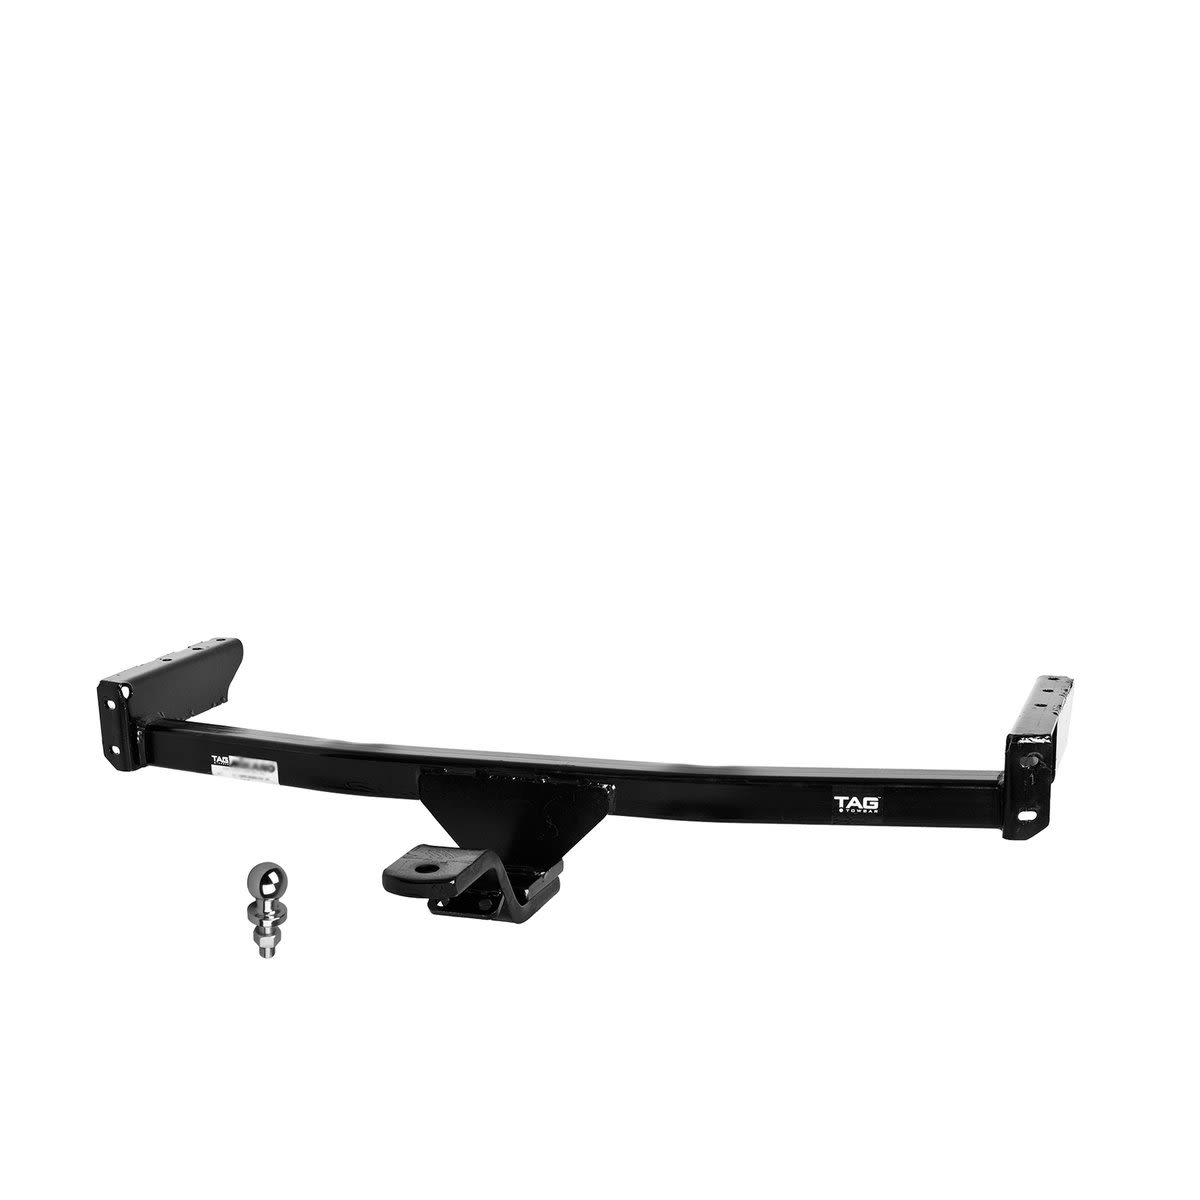 TAG Light Duty Towbar to suit Holden Commodore (01/2008 - 10/2013) - Direct Fit ECU